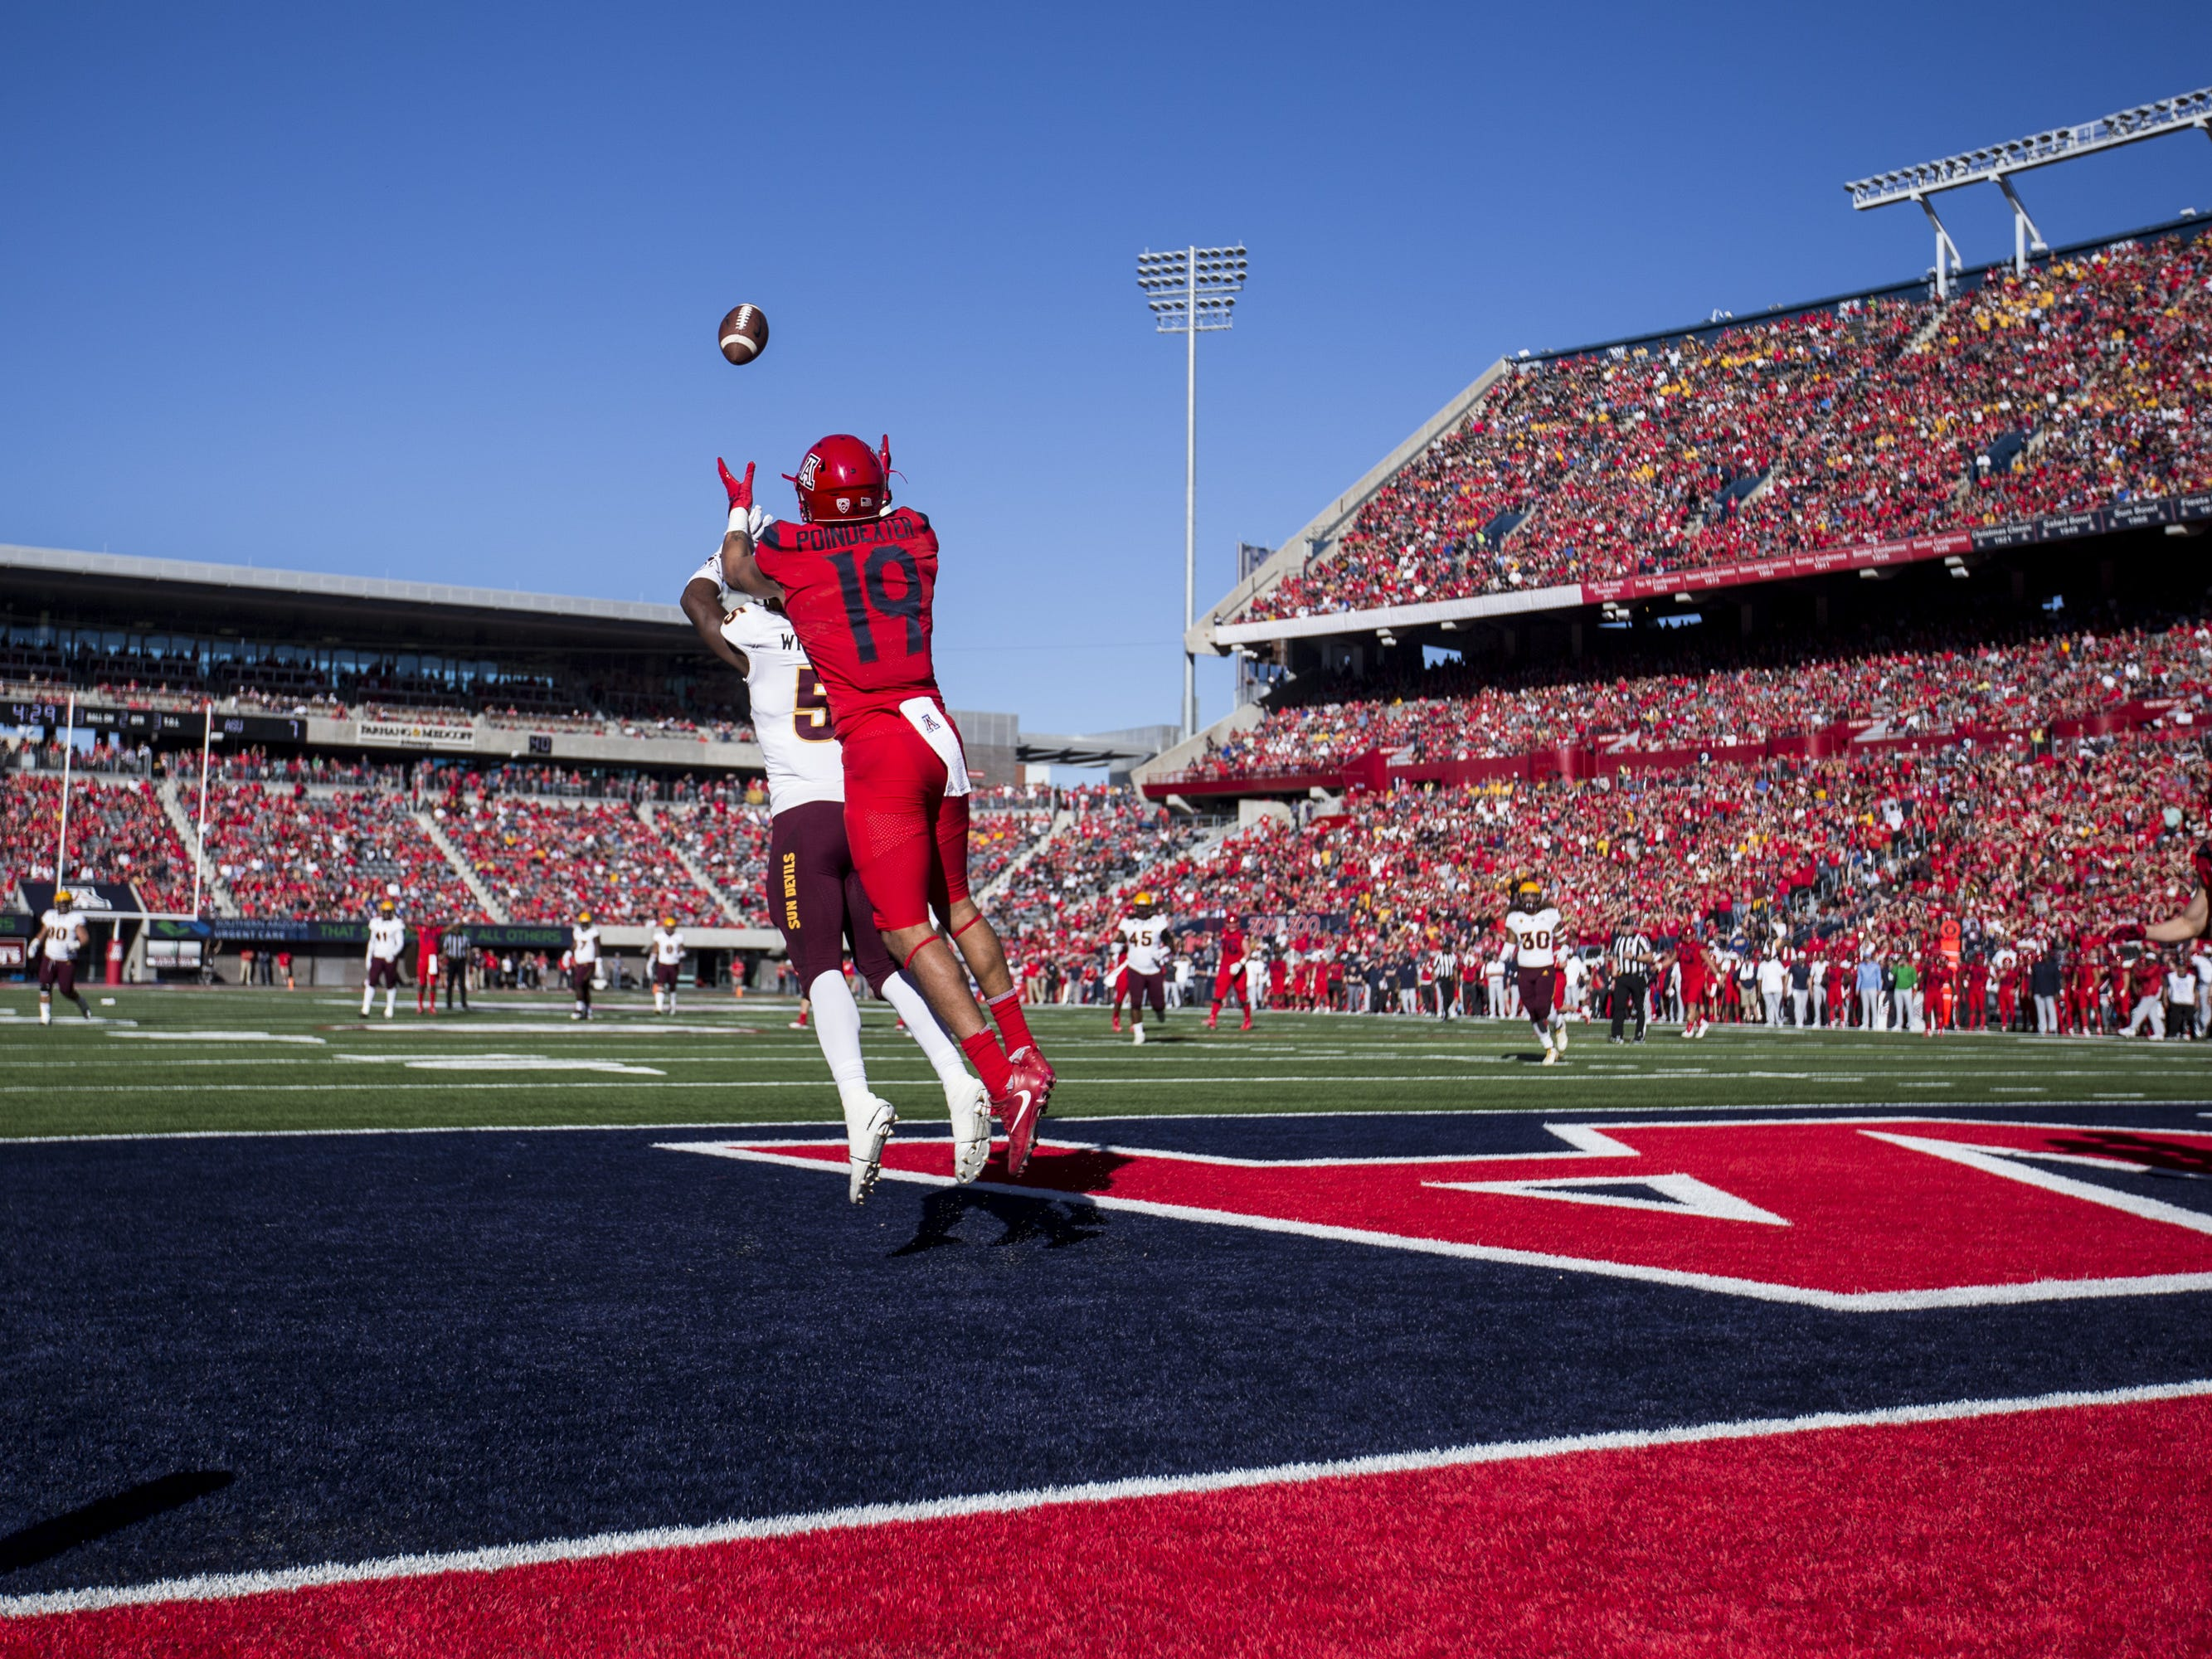 Arizona's Shawn Poindexter scores a touchdown reception over Arizona State's Kobe Williams during the first half of the Territorial Cup on Saturday, Nov. 24, 2018, at Arizona Stadium in Tucson, Ariz.